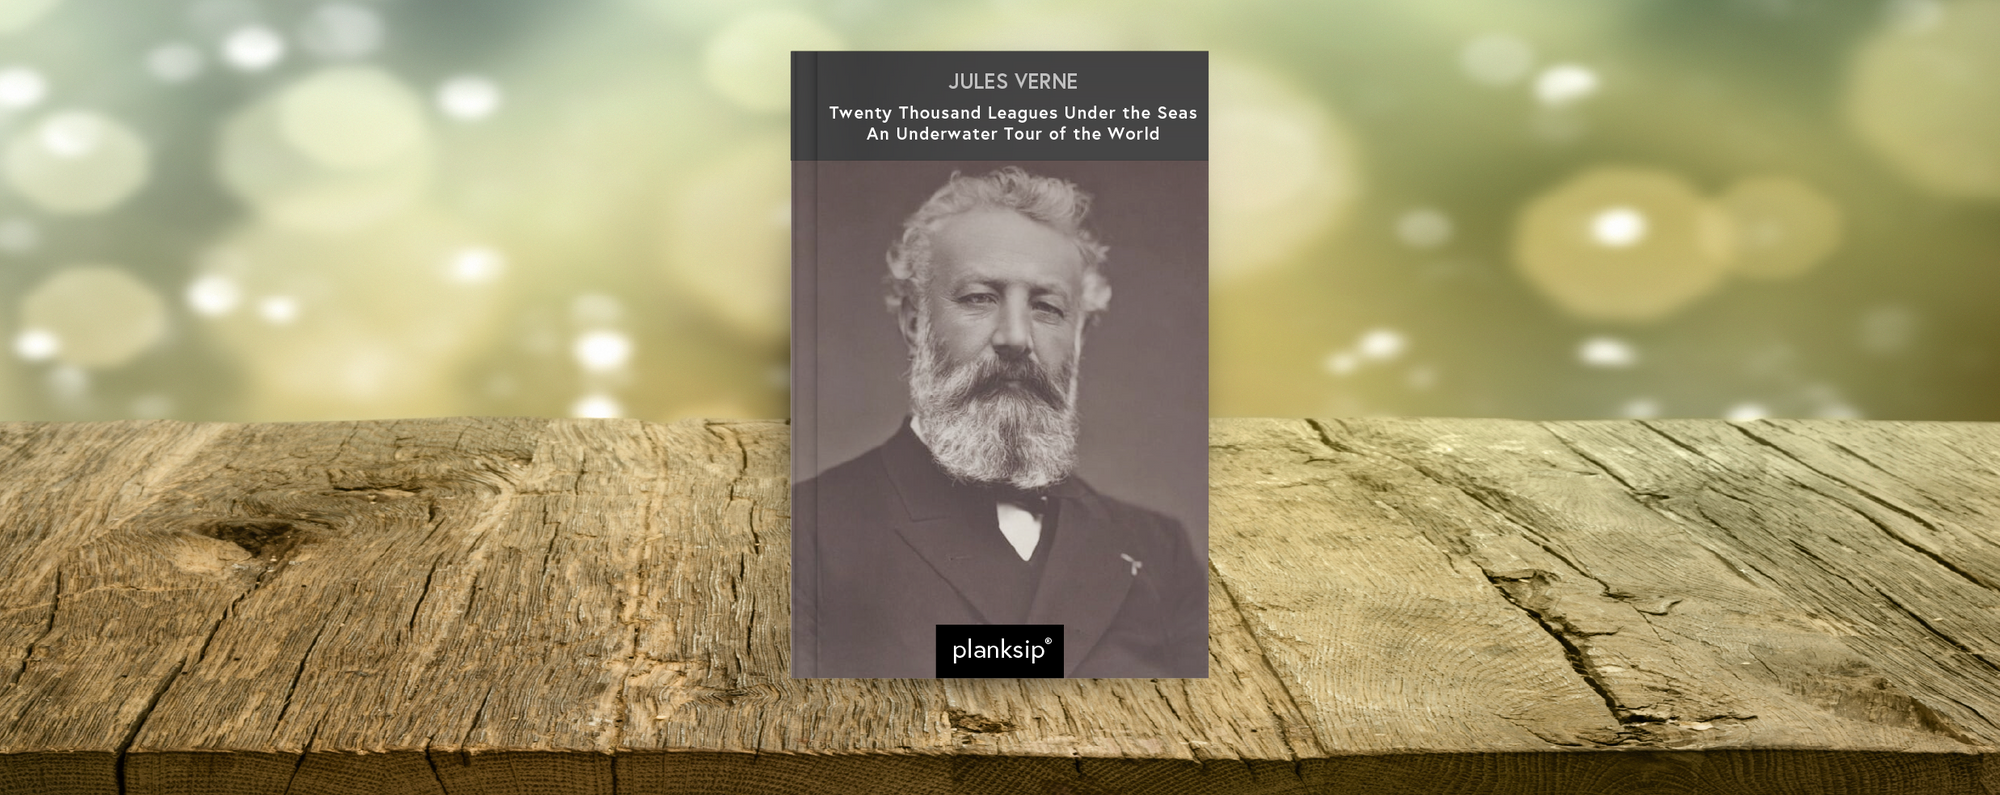 Twenty Thousand Leagues Under the Sea by Jules Verne (1828-1905). Published by planksip